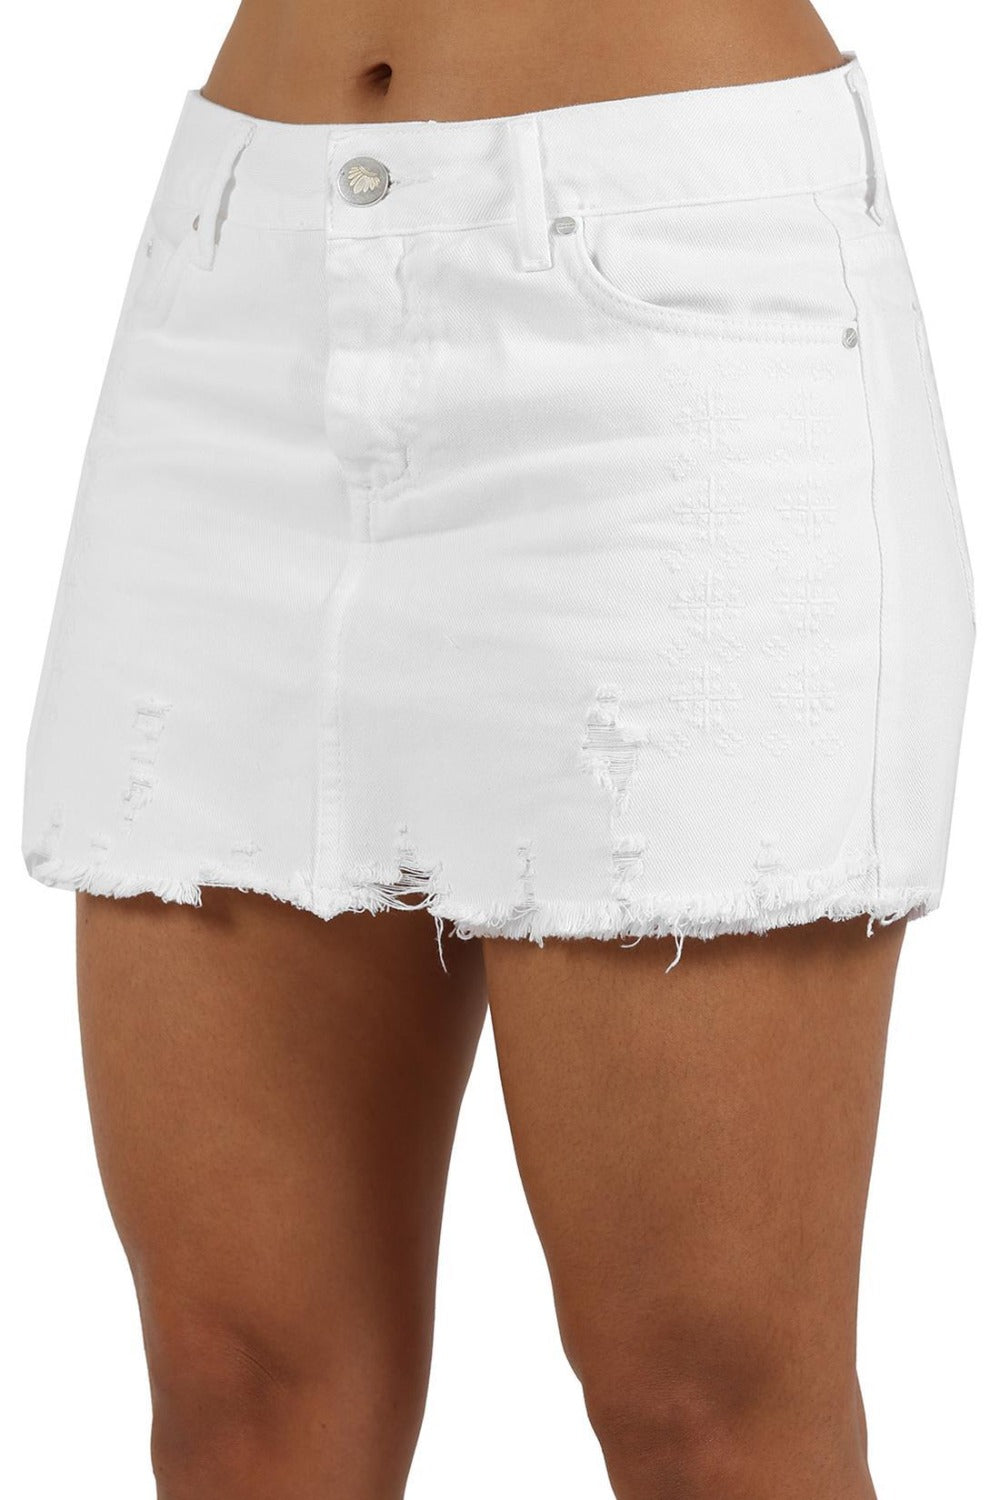 SHORT SAIA ITS&CO CHERRY